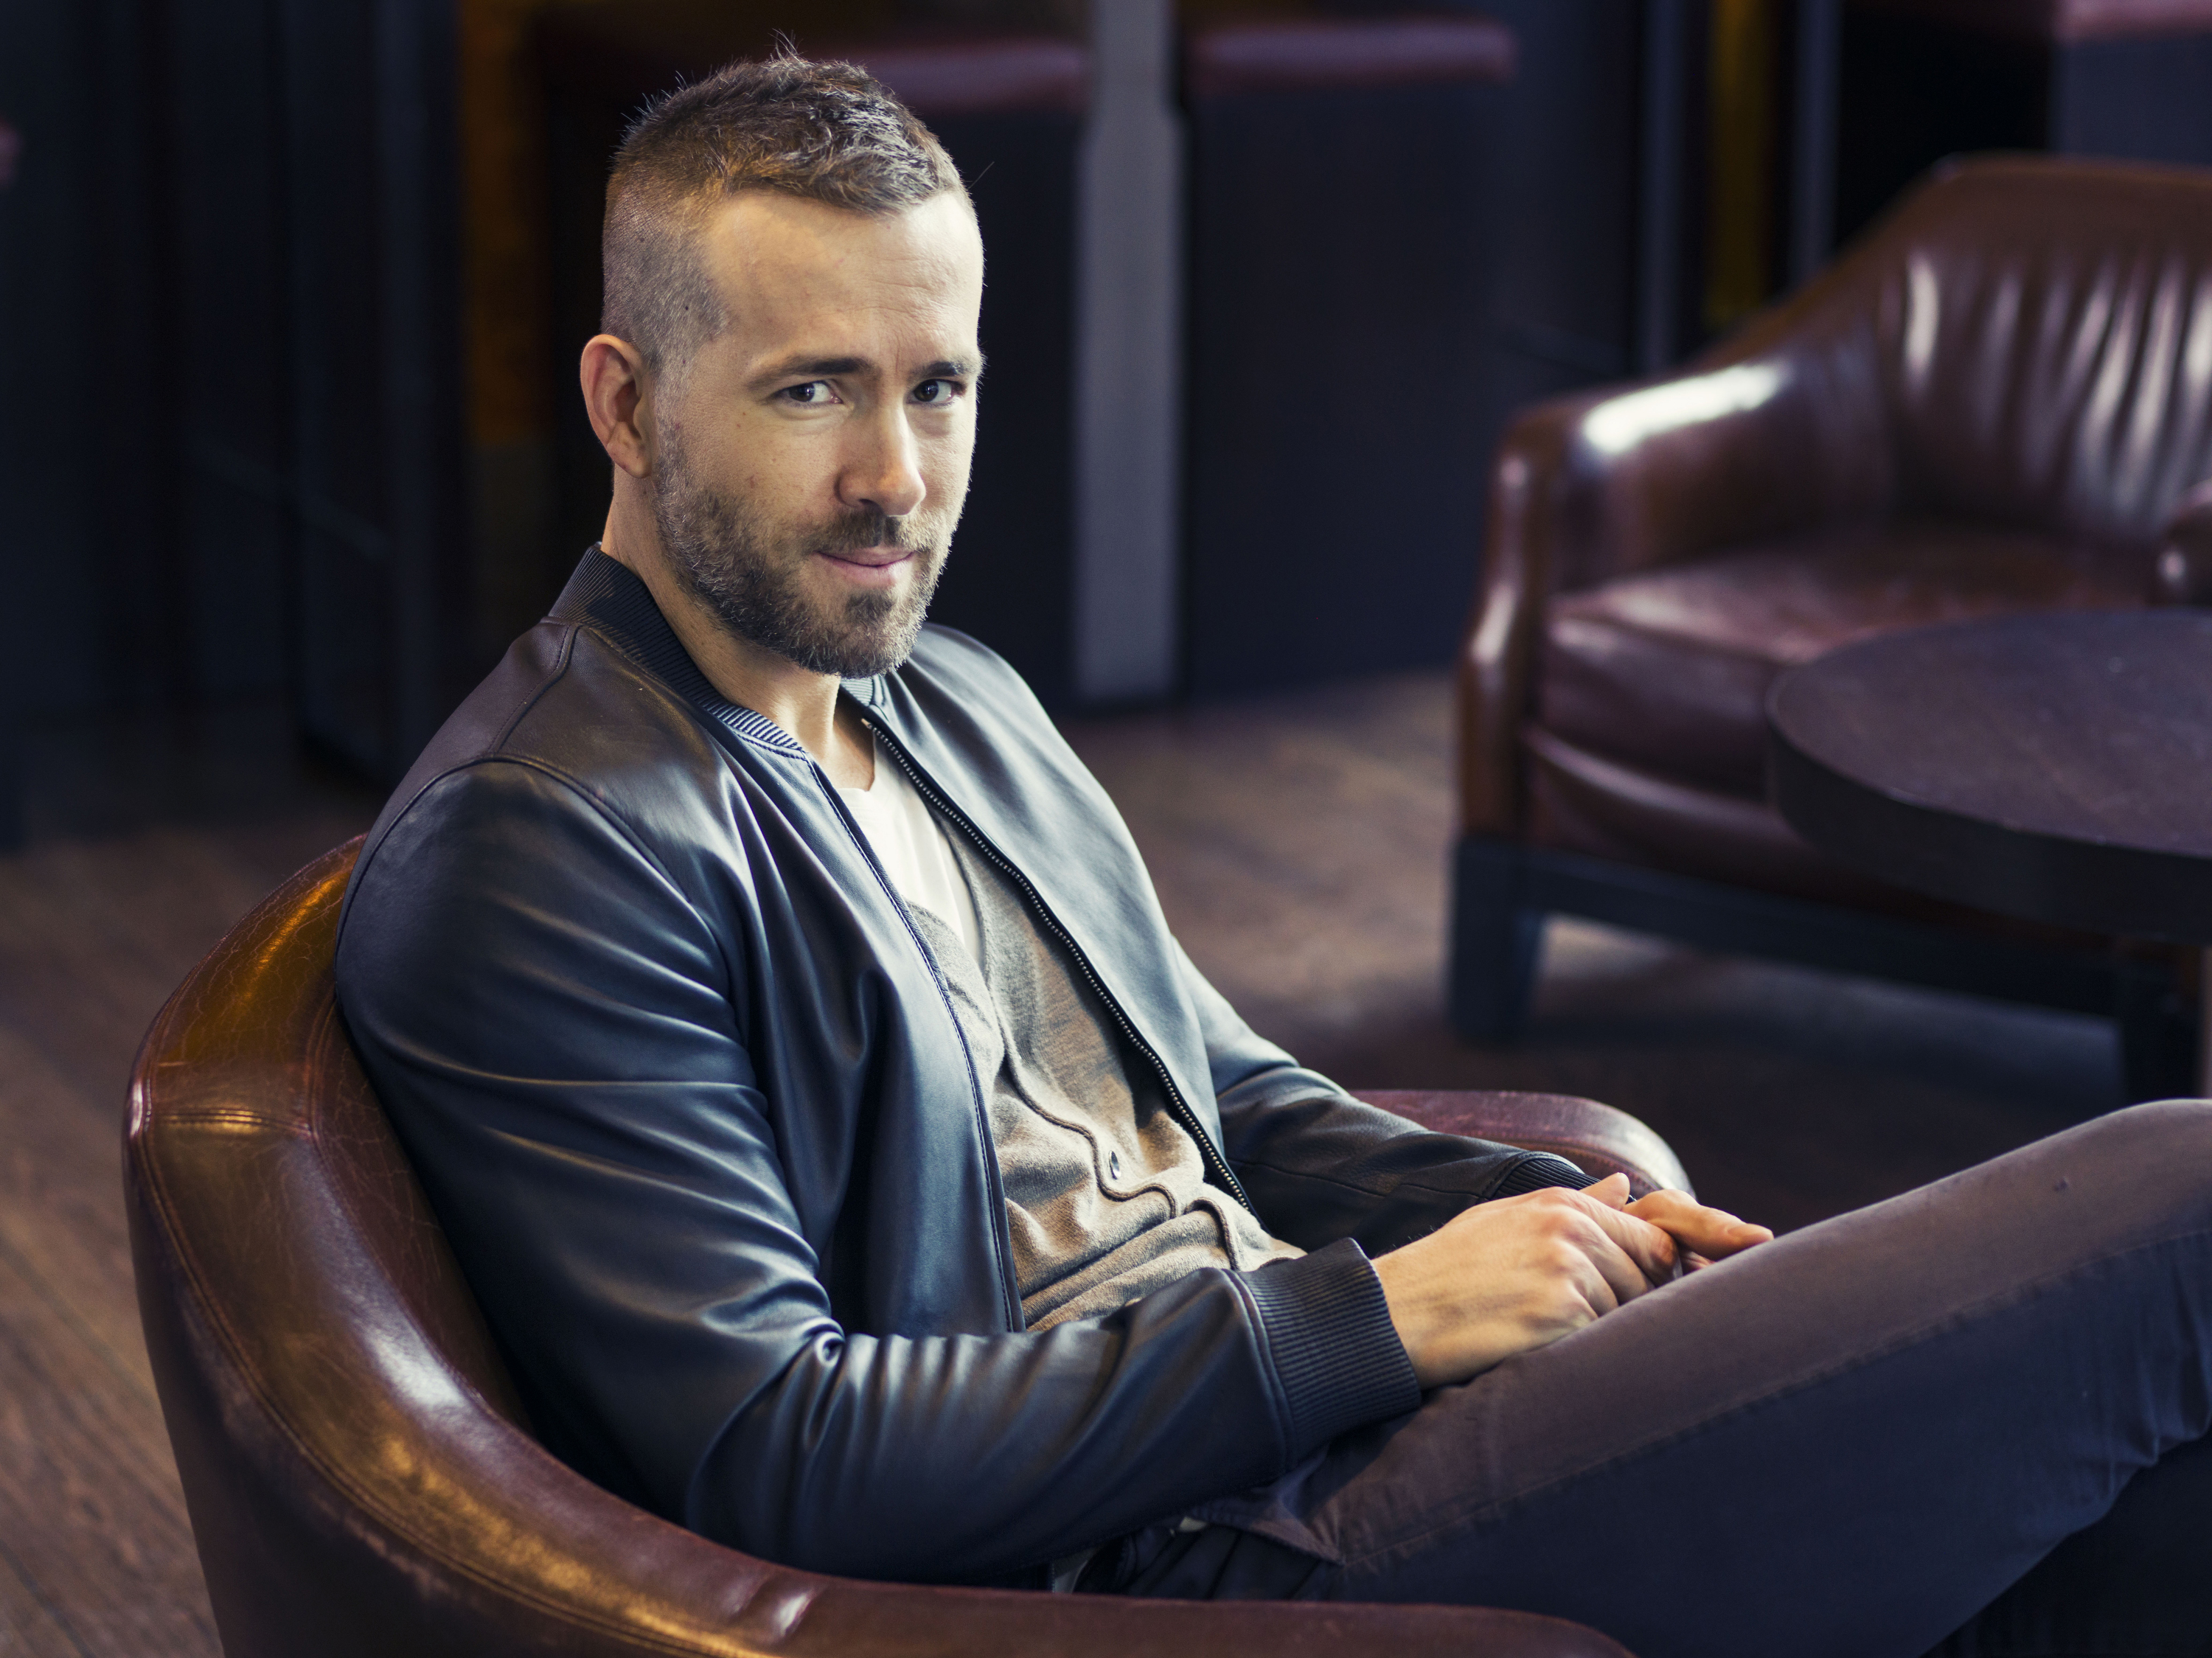 Ryan Reynolds poses for a portrait in promotion of his role in the film Woman in Gold on Feb. 26, 2015 in New York.